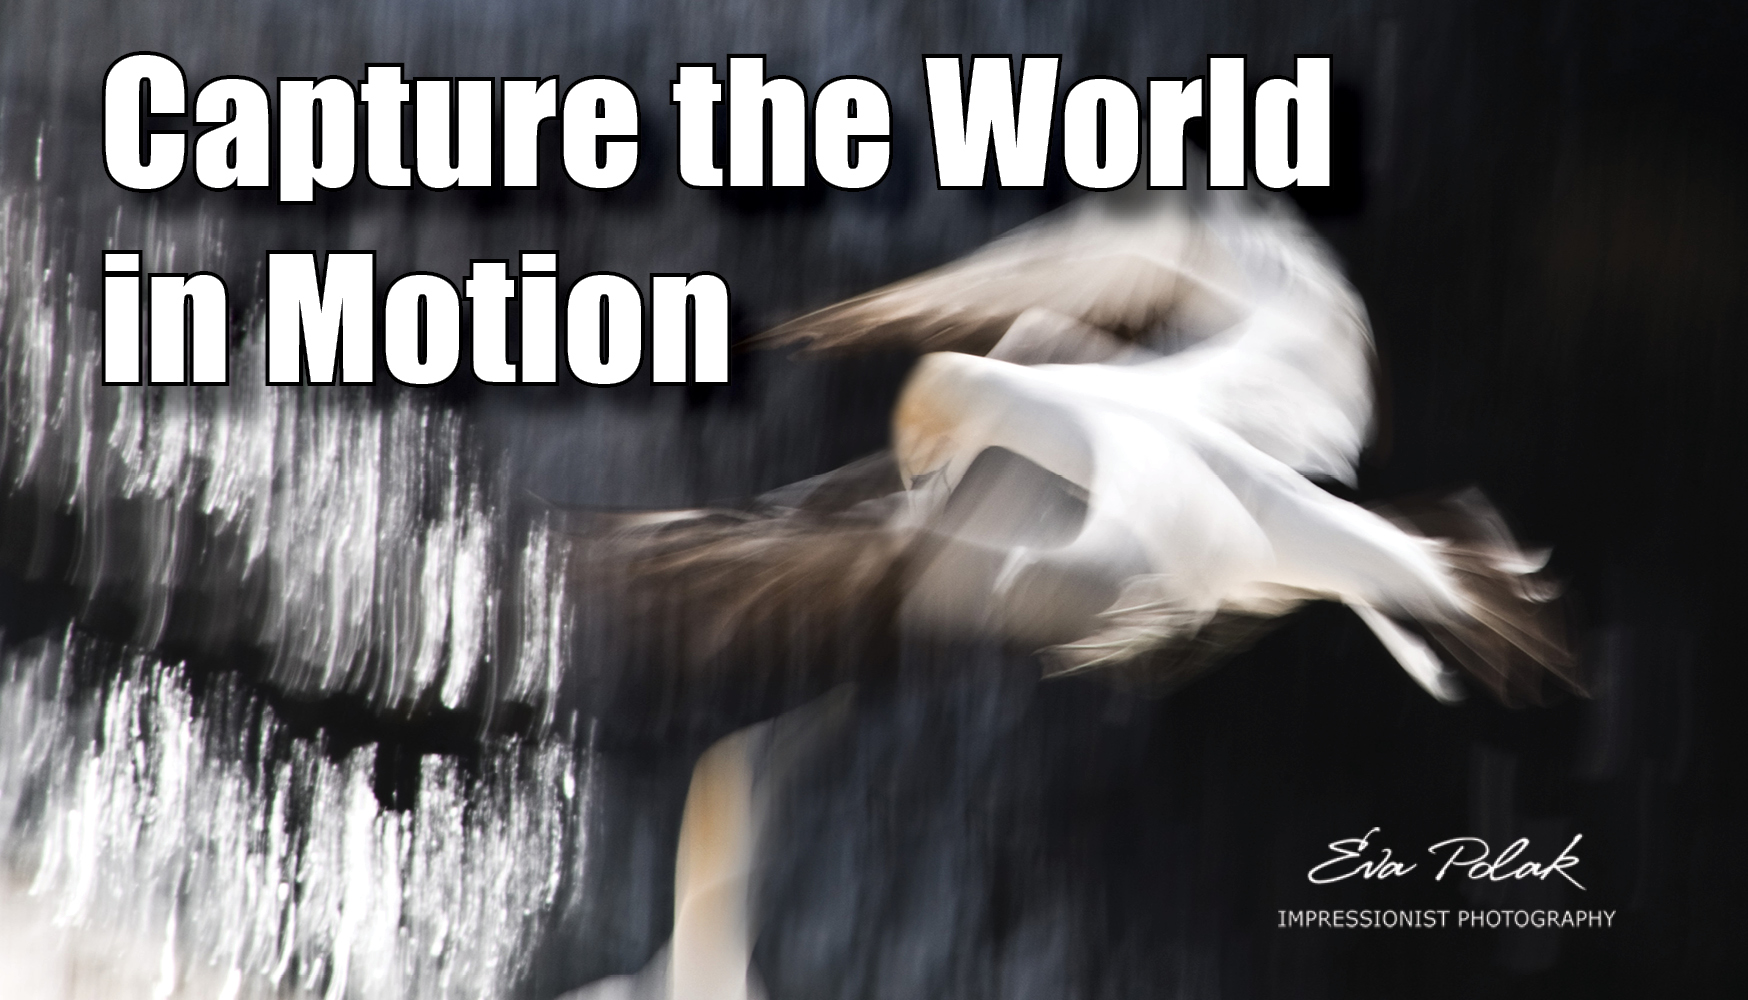 Capture the world in motion